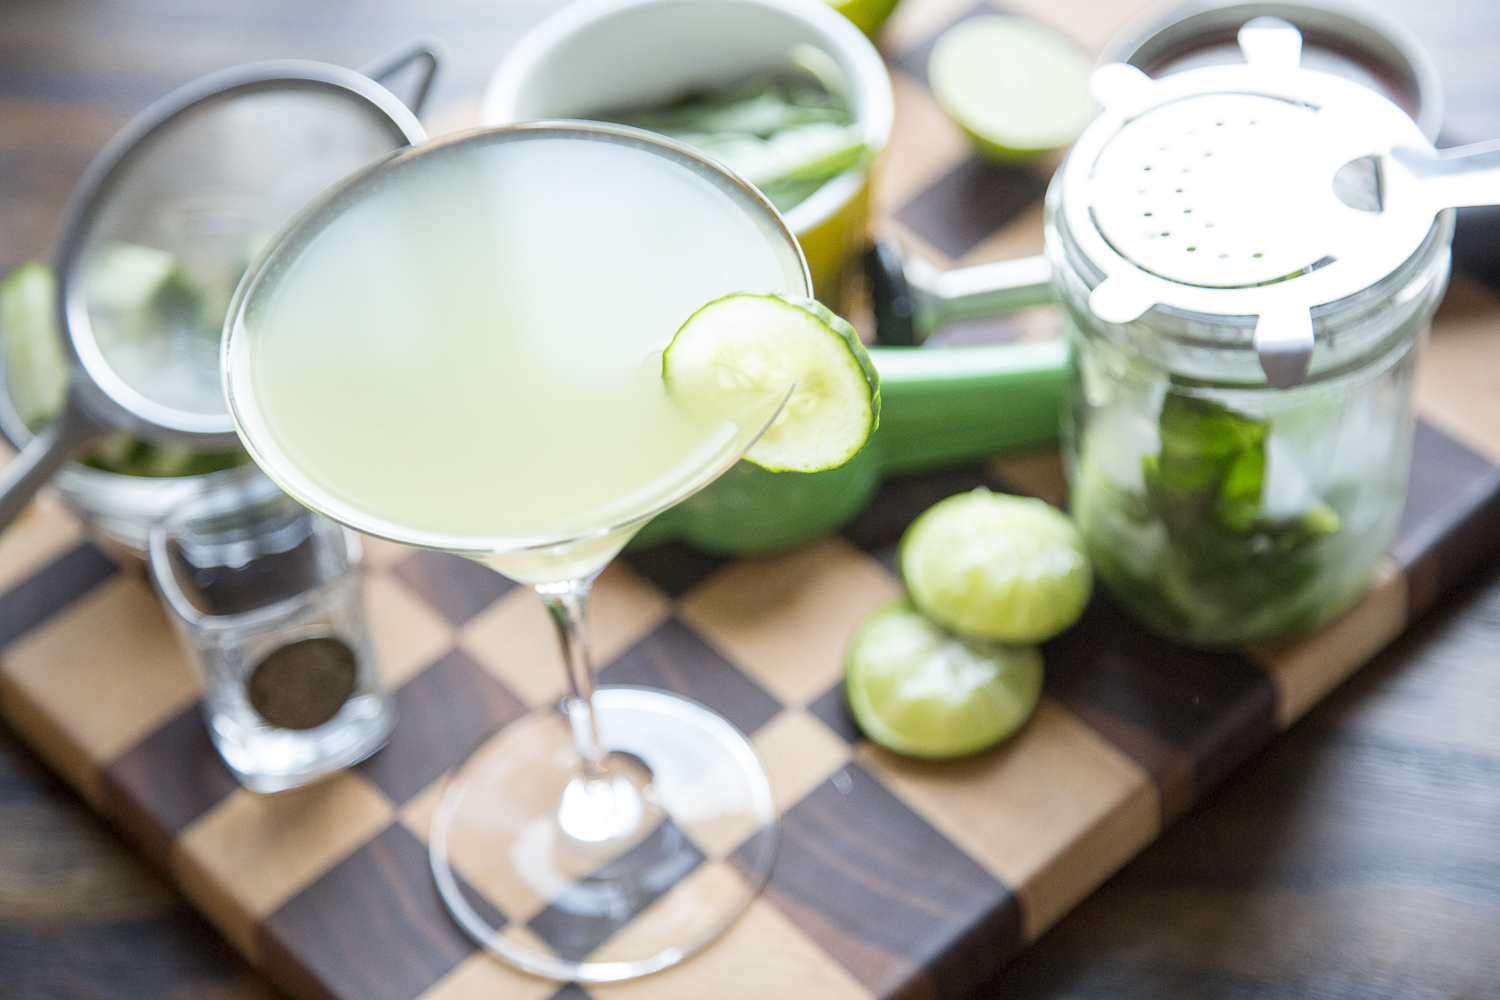 Muddled Cucumber and Lime